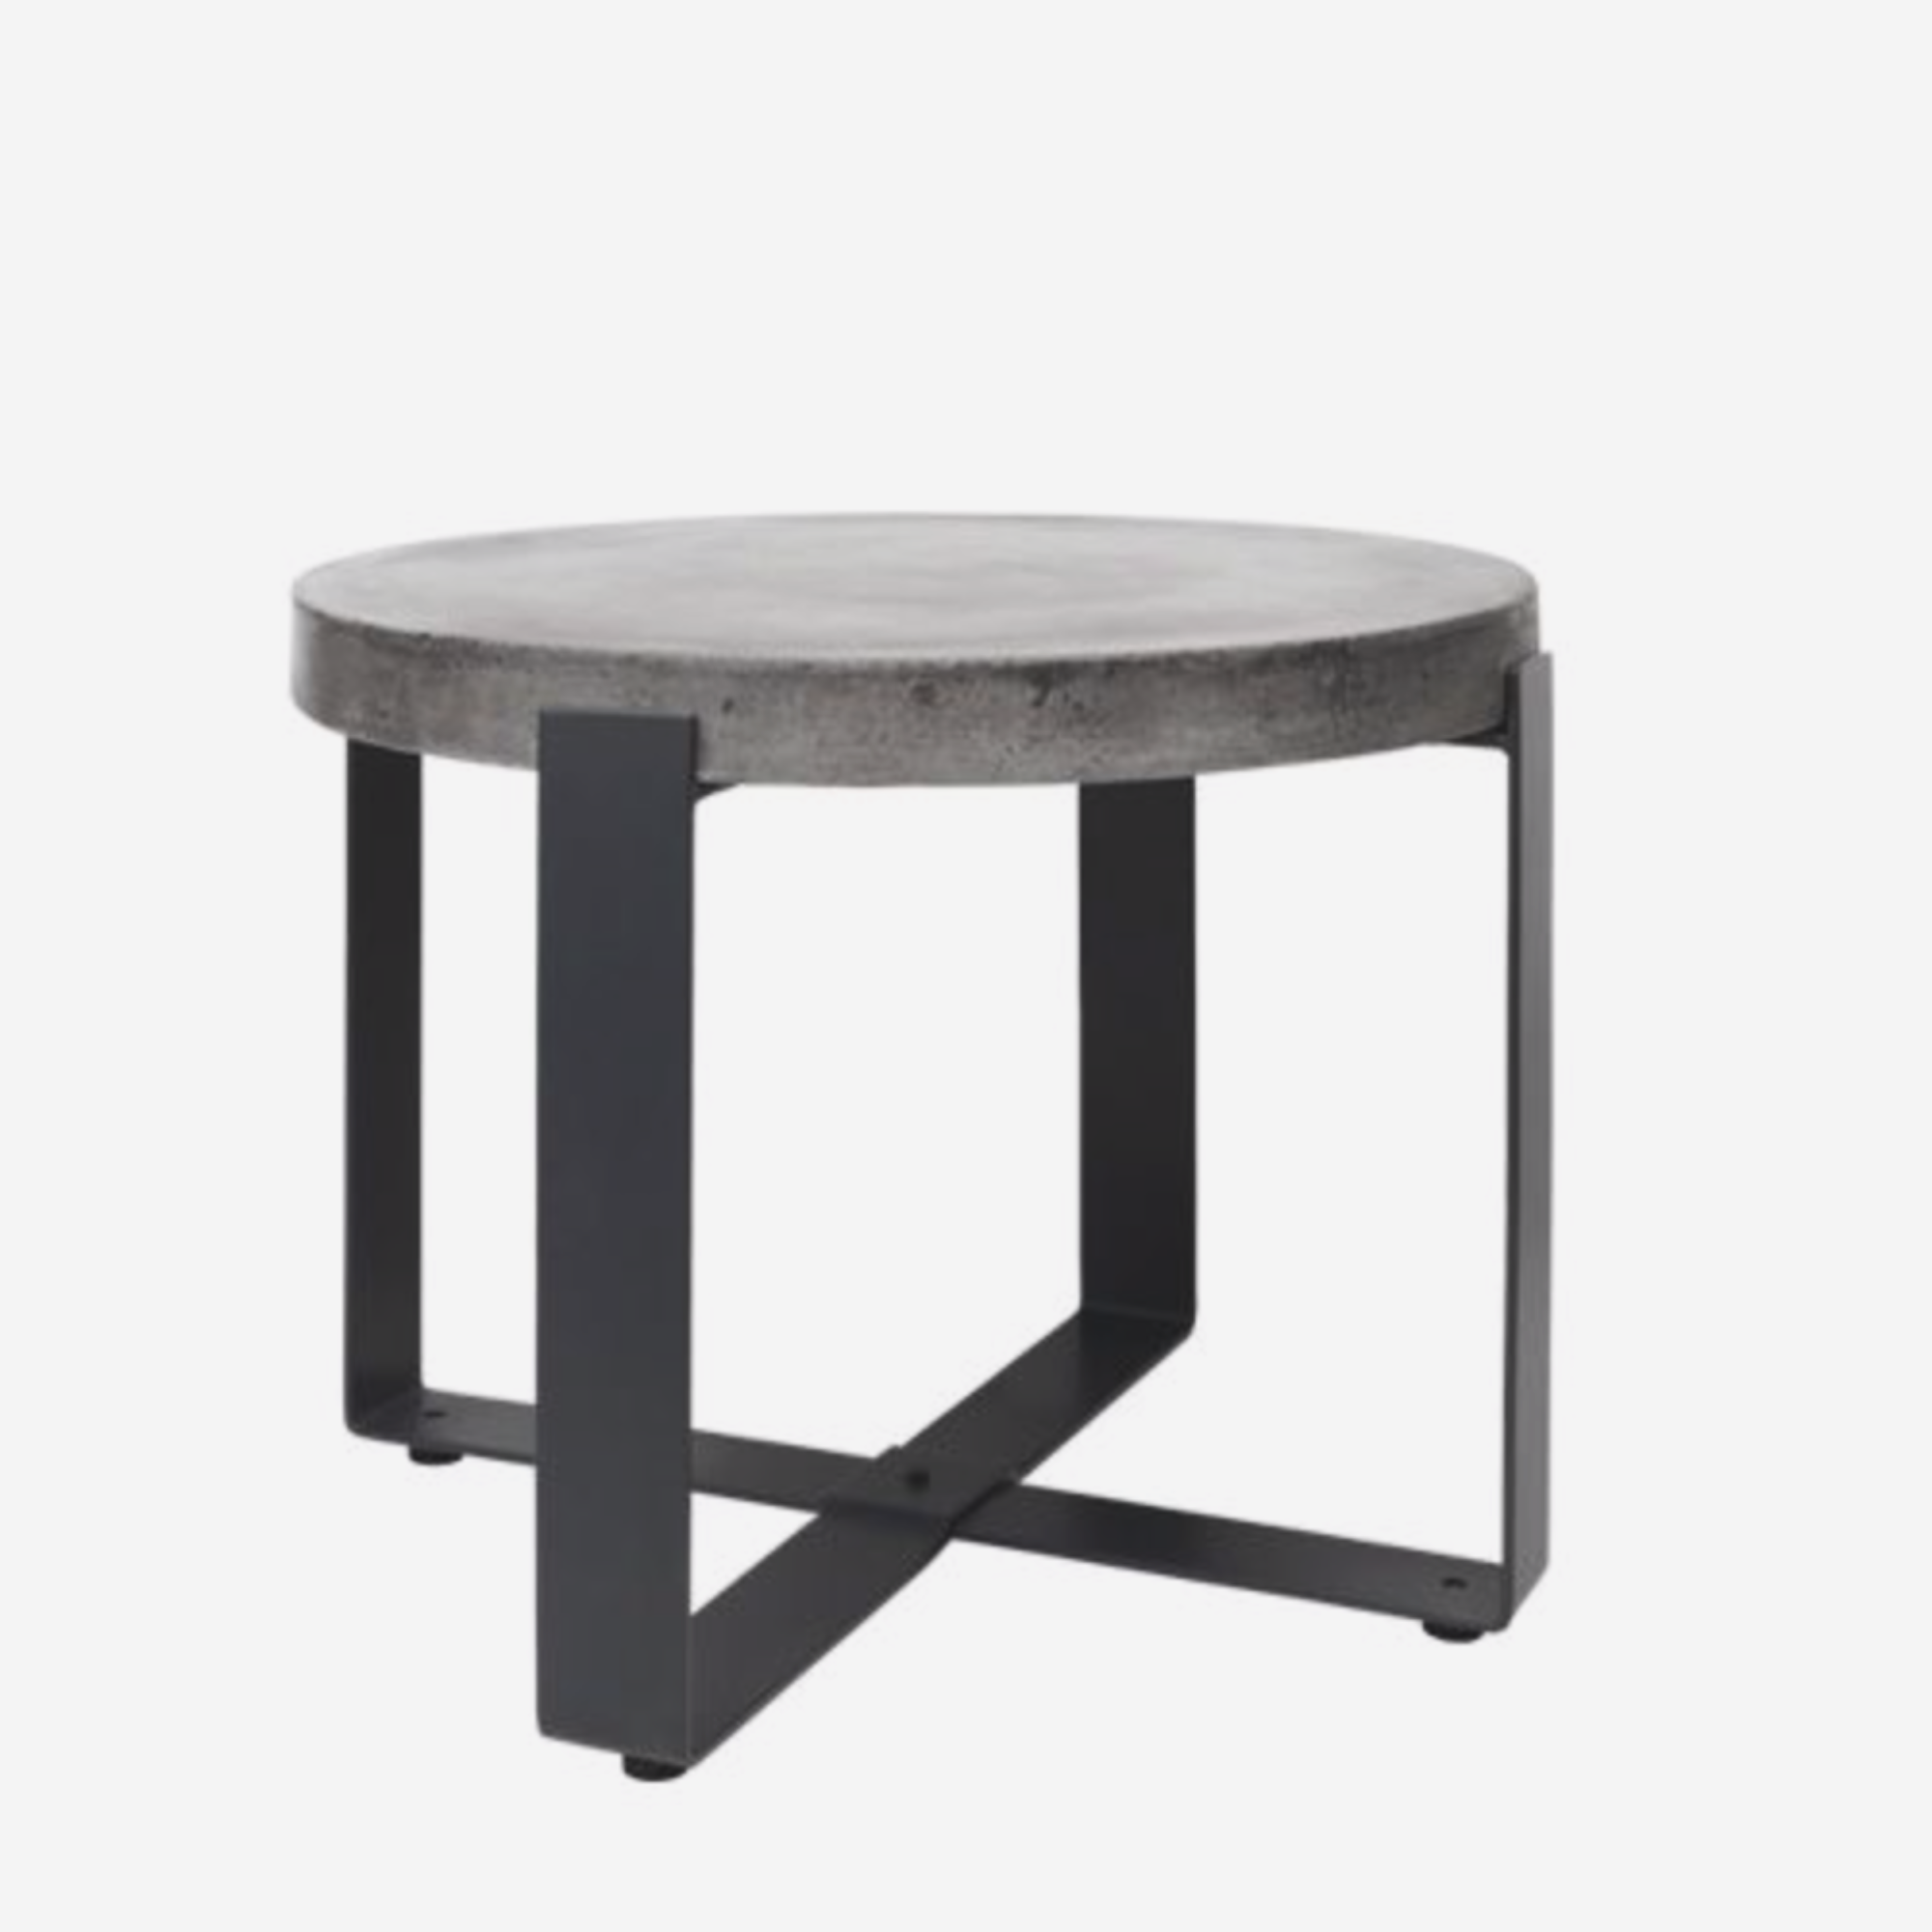 cozy living Concrete side table - round - low på nordlyhome.dk